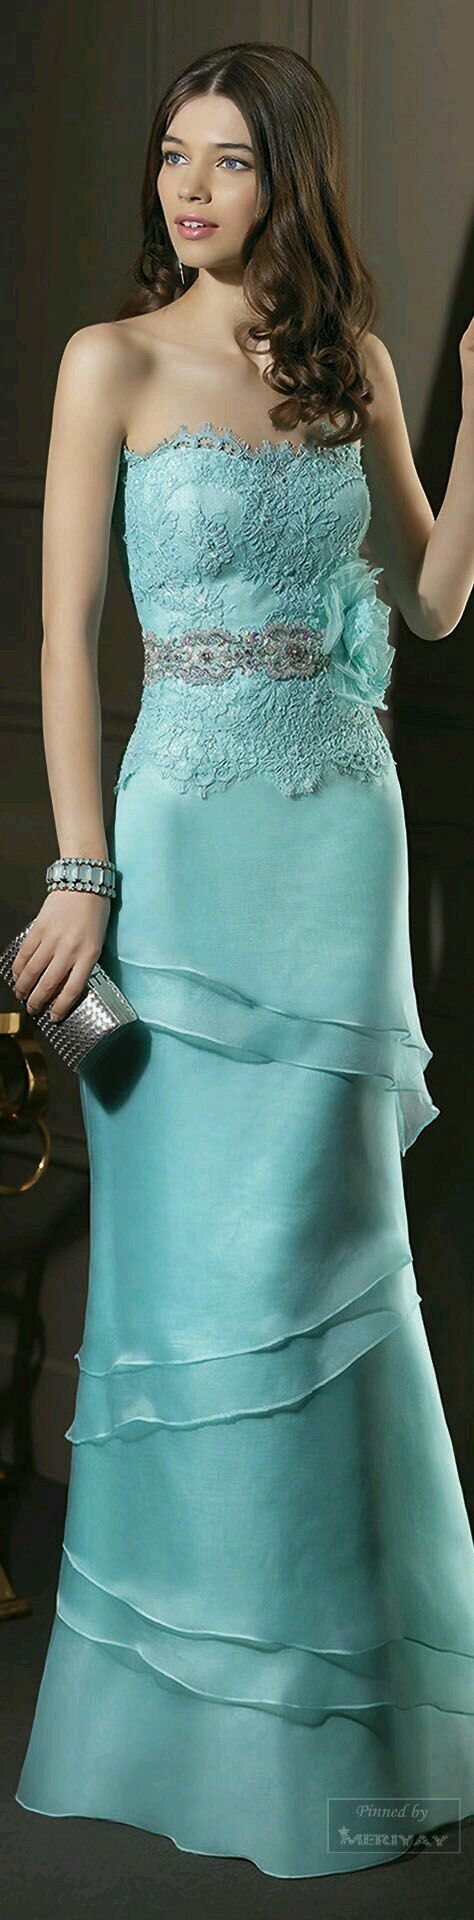 92 best Brokat Style images on Pinterest | Evening gowns, Lace ...